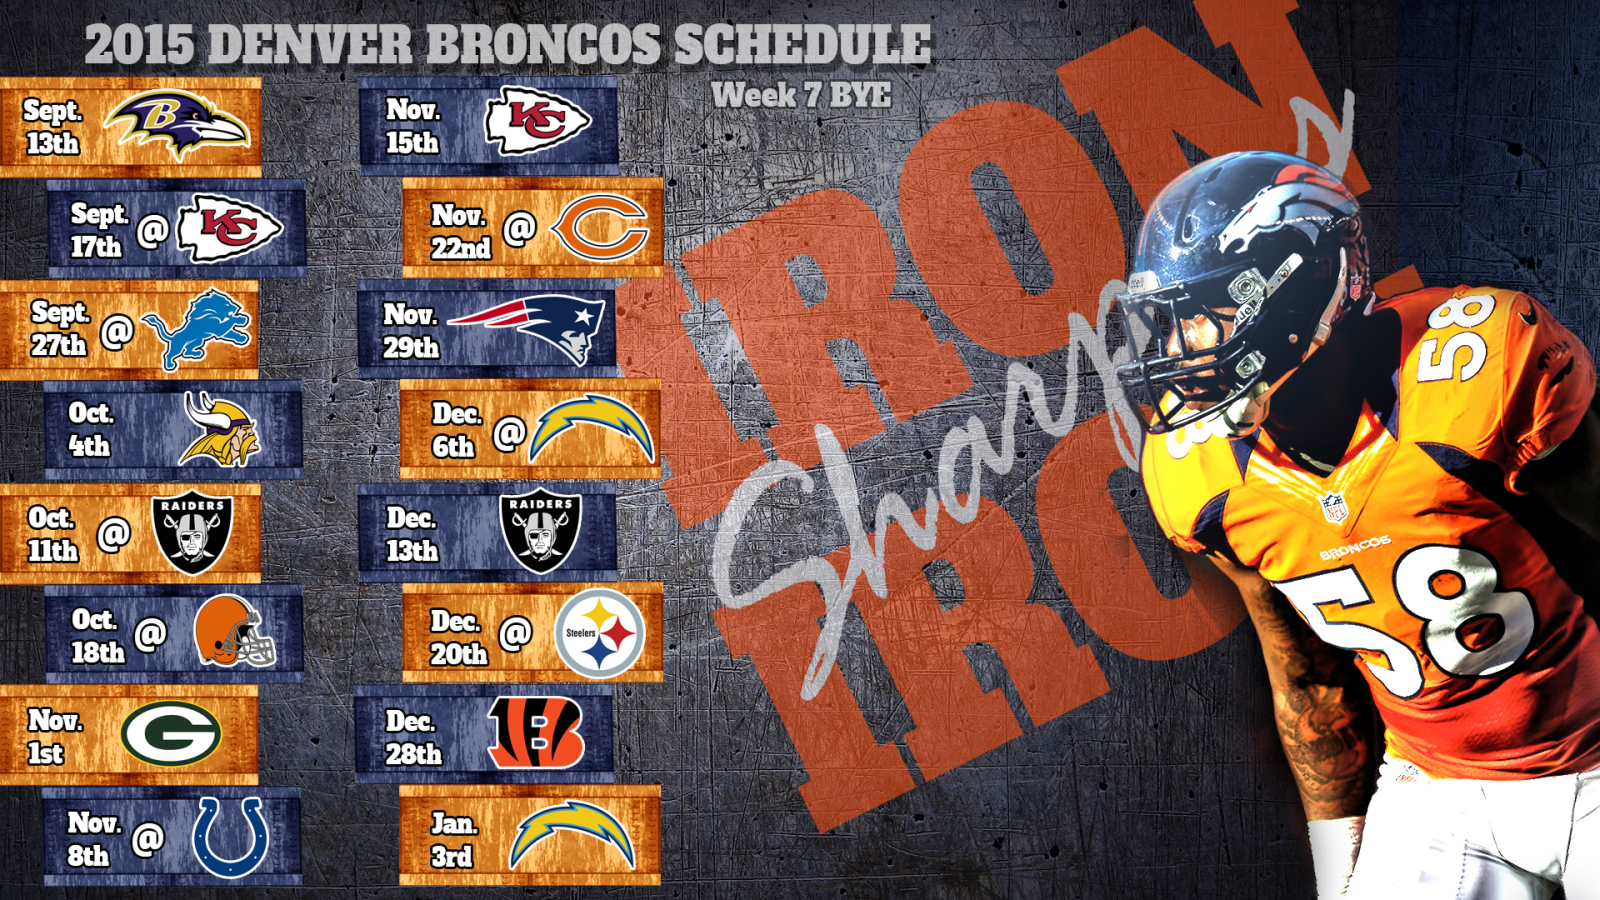 Broncos Schedule Wallpaper